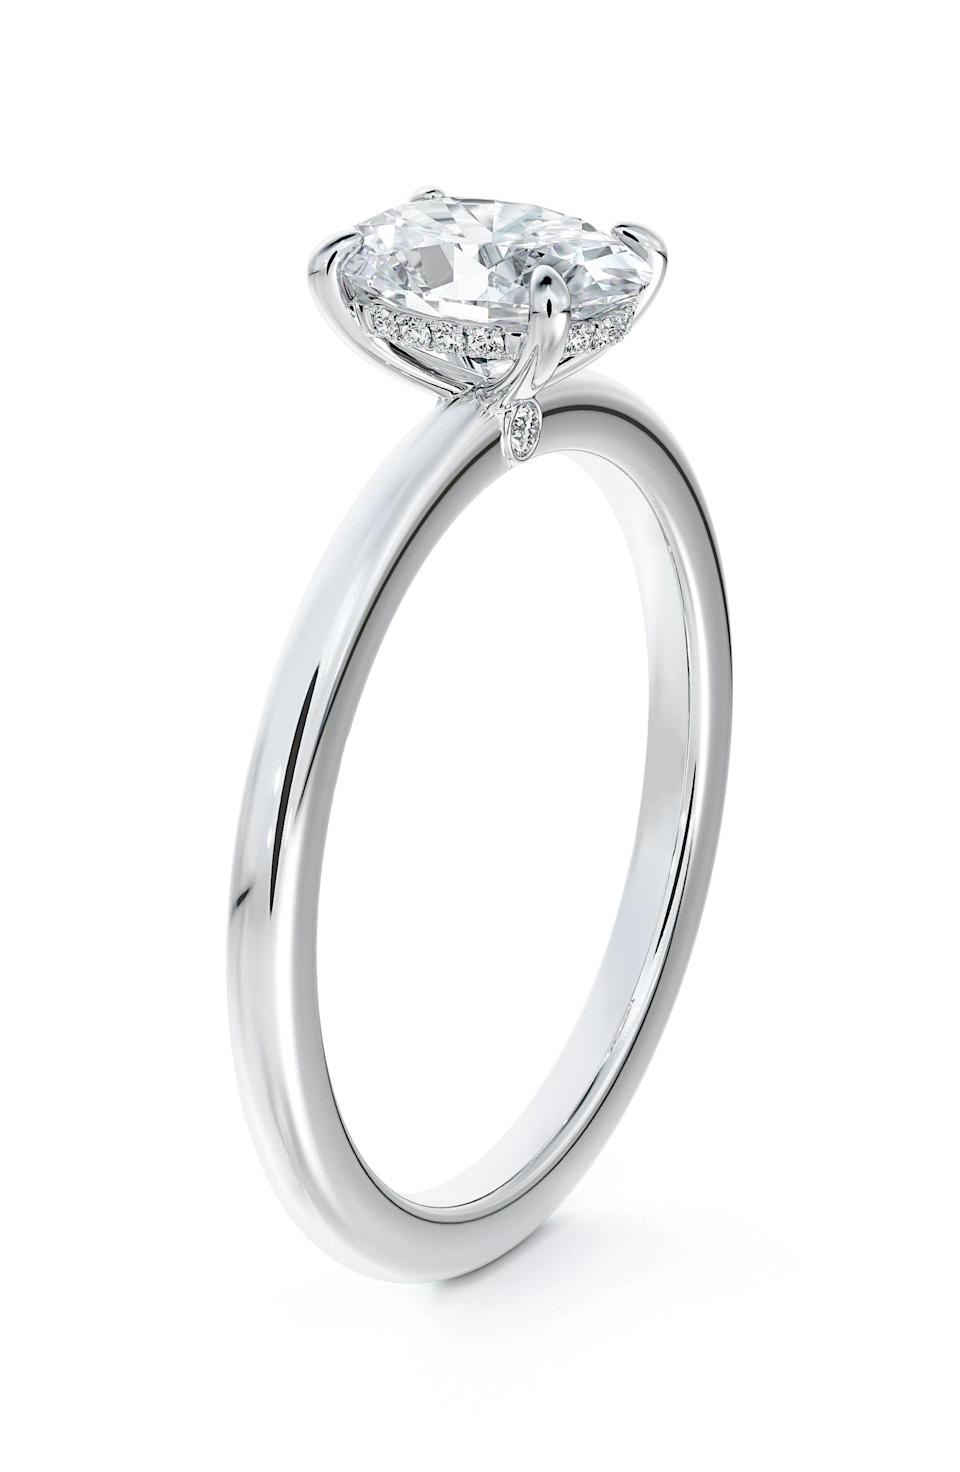 """<p><strong>De Beers Forevermark</strong></p><p>nordstrom.com</p><p><strong>$5445.00</strong></p><p><a href=""""https://go.redirectingat.com?id=74968X1596630&url=https%3A%2F%2Fwww.nordstrom.com%2Fs%2Fde-beers-forevermark-x-micaela-simply-solitaire-oval-engagement-ring%2F5824928&sref=https%3A%2F%2Fwww.townandcountrymag.com%2Fstyle%2Fjewelry-and-watches%2Fg37368162%2Ffine-jewelry-brands-at-nordstrom%2F"""" rel=""""nofollow noopener"""" target=""""_blank"""" data-ylk=""""slk:Shop Now"""" class=""""link rapid-noclick-resp"""">Shop Now</a></p><p>De Beers is known worldwide for their exquisite natural diamonds—and a go to for the engagement set. </p>"""